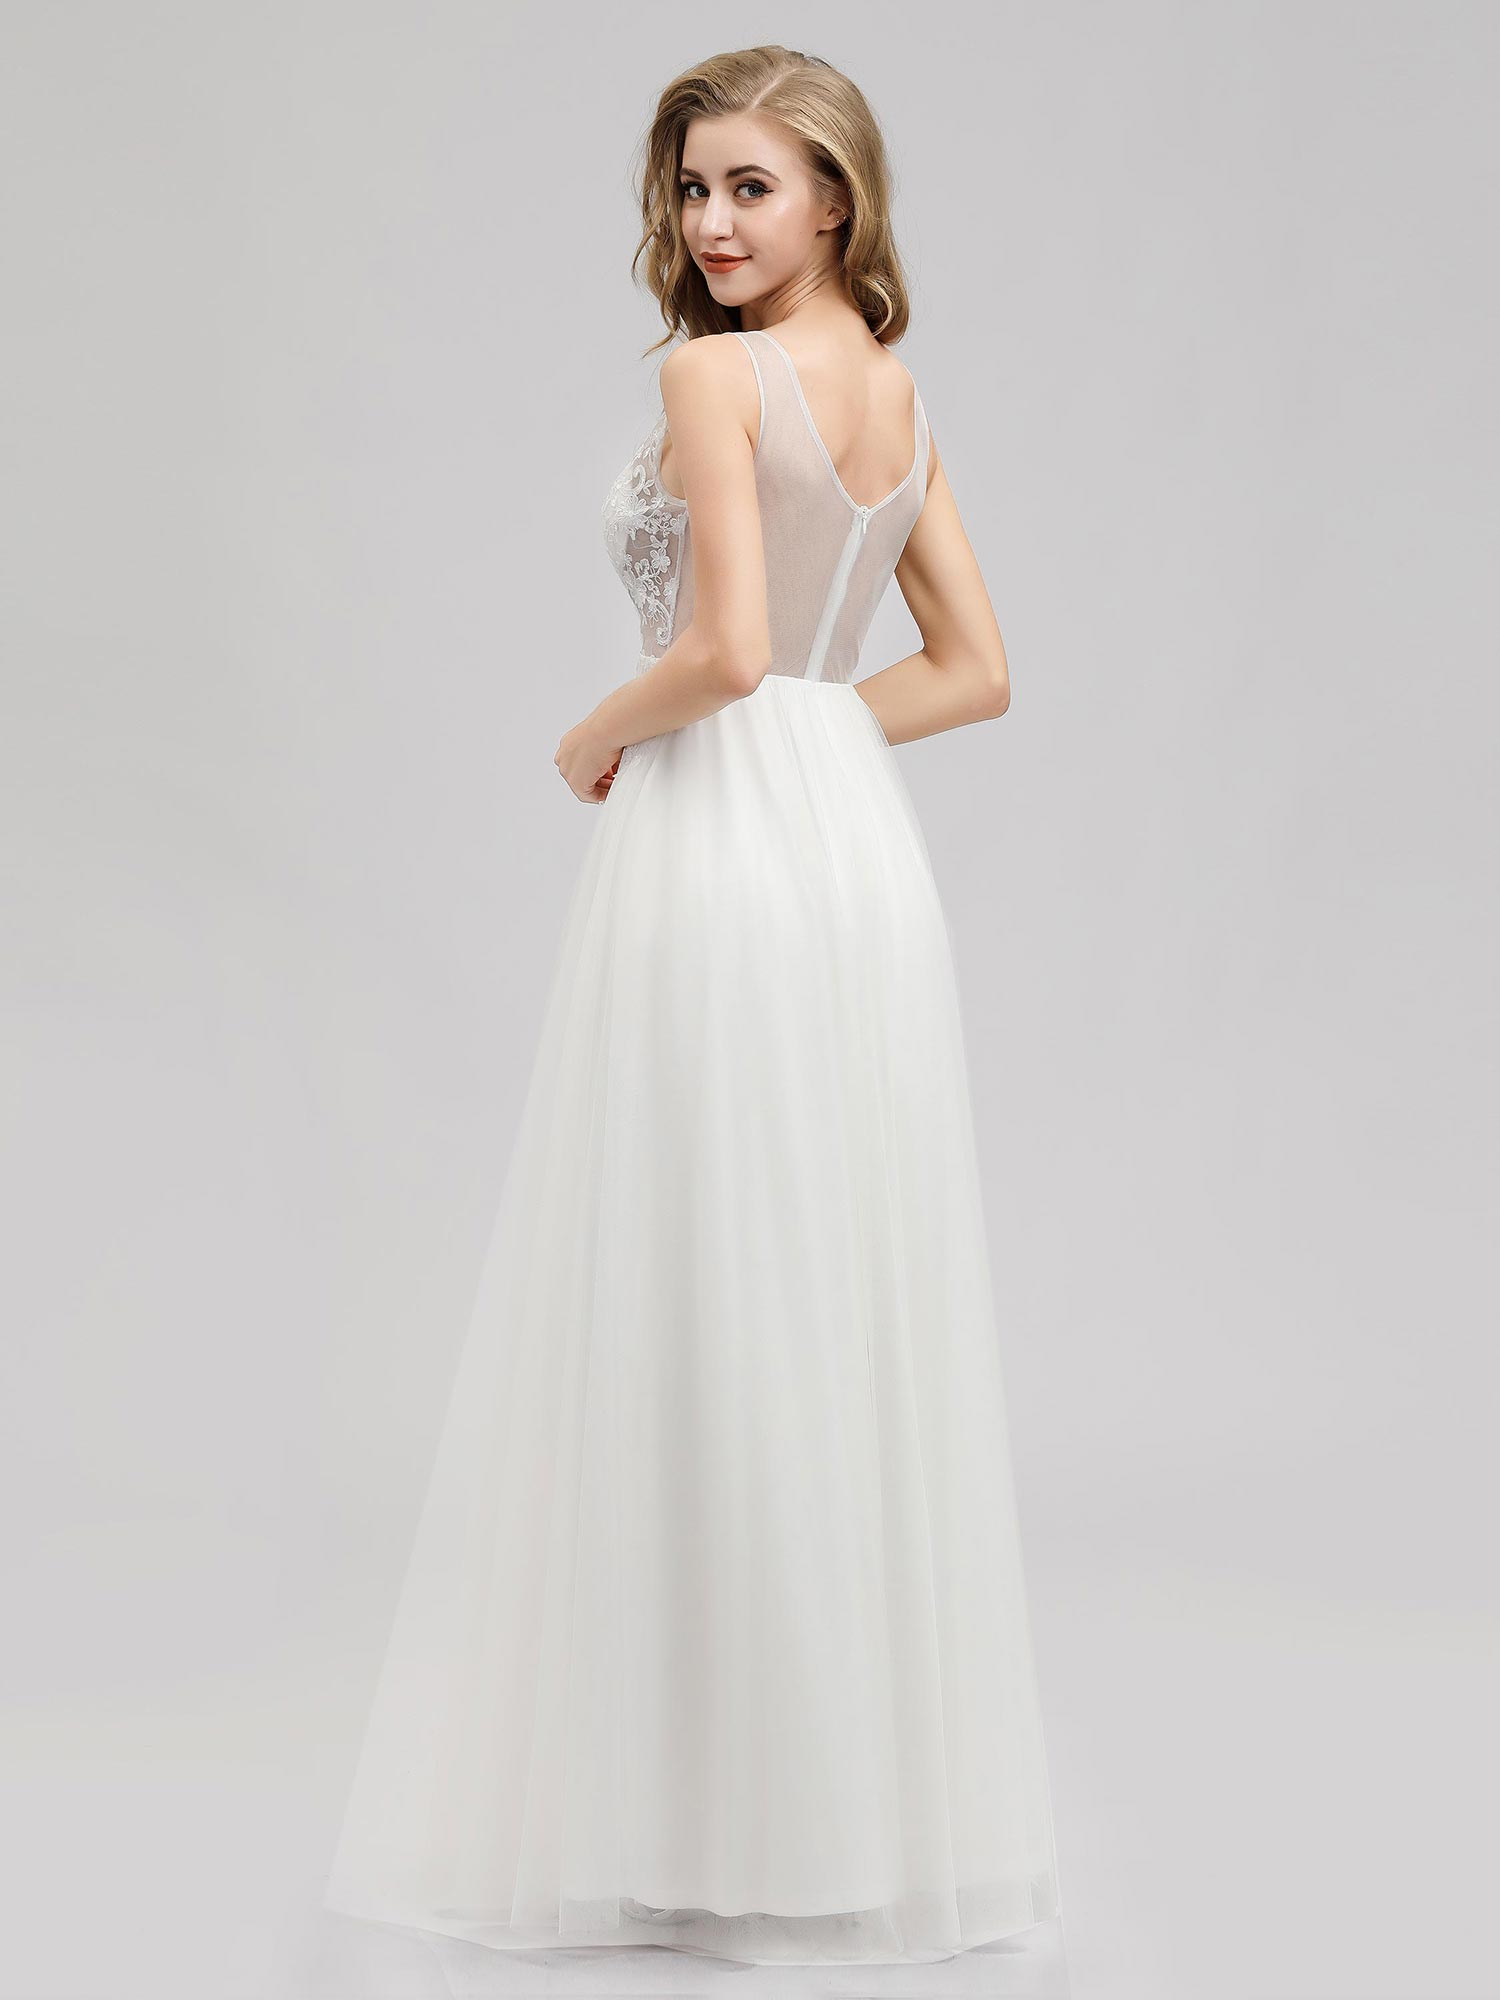 Ever-pretty-Sleeveless-Formal-Lace-Evening-Party-Dress-Cocktail-Homecoming-Prom thumbnail 5